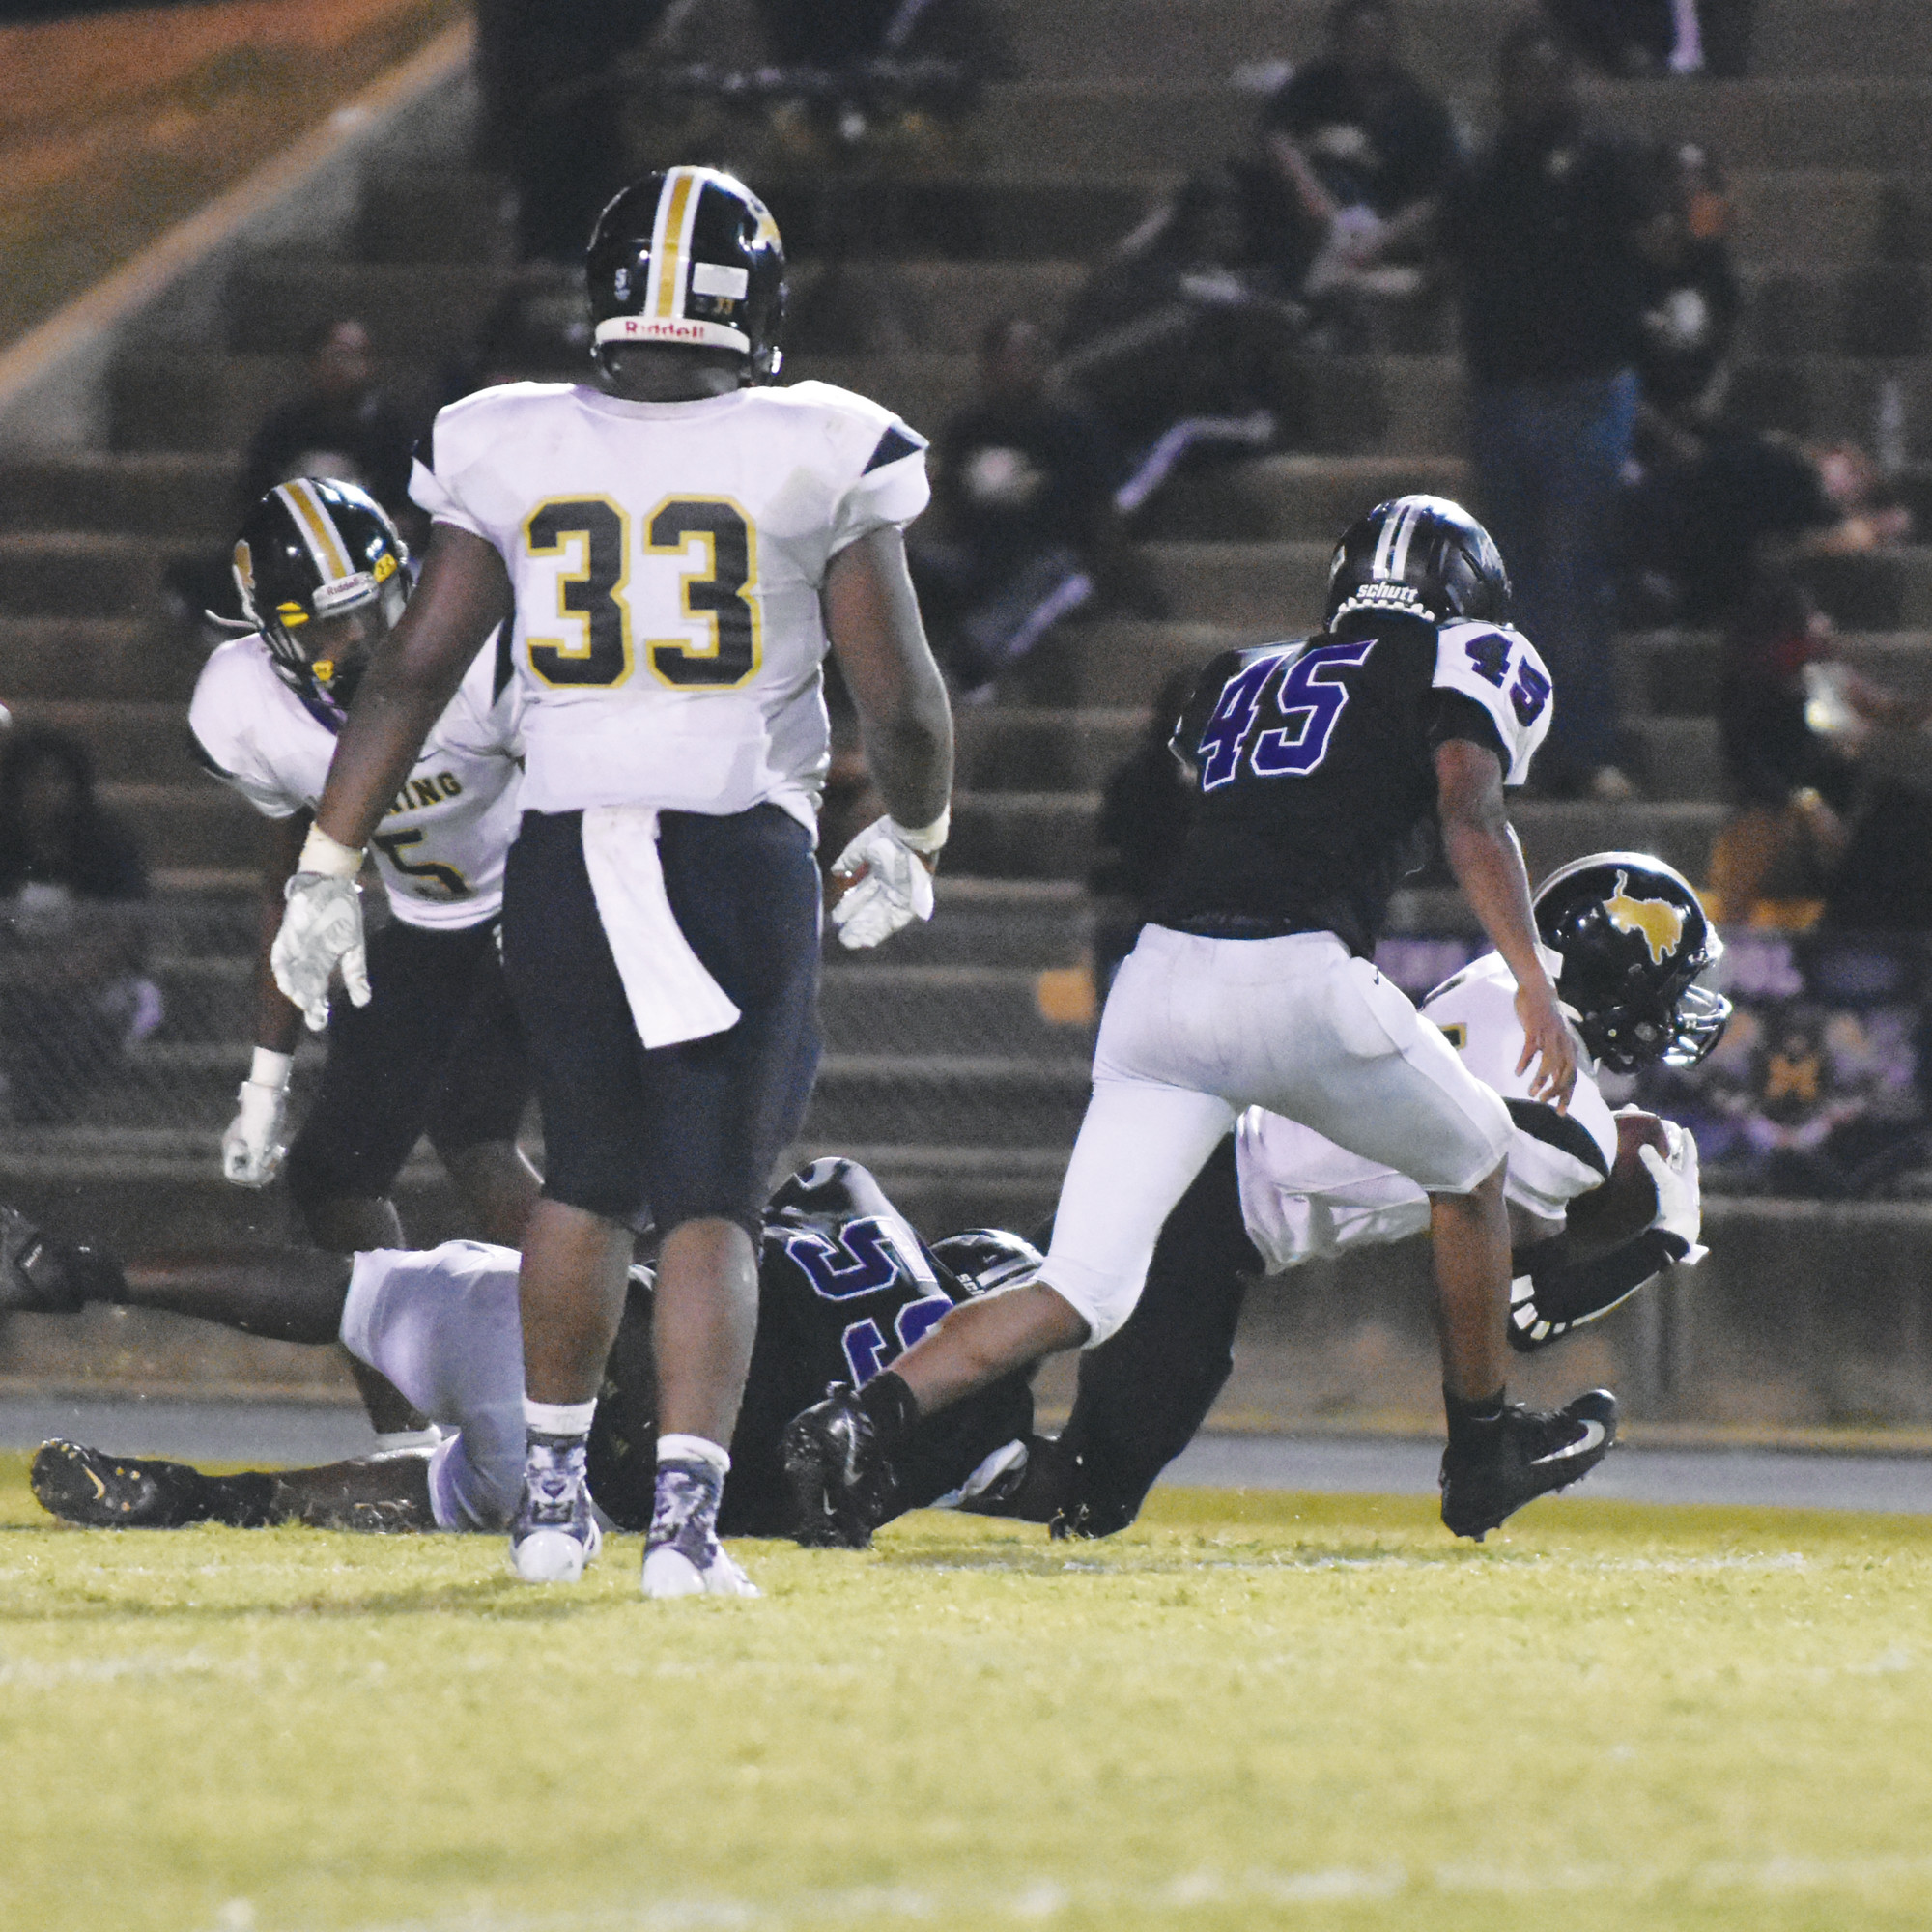 Crestwood defensive end Parris Lowery (55) makes a tackle on Manning wide receiver Aaron Smith during the